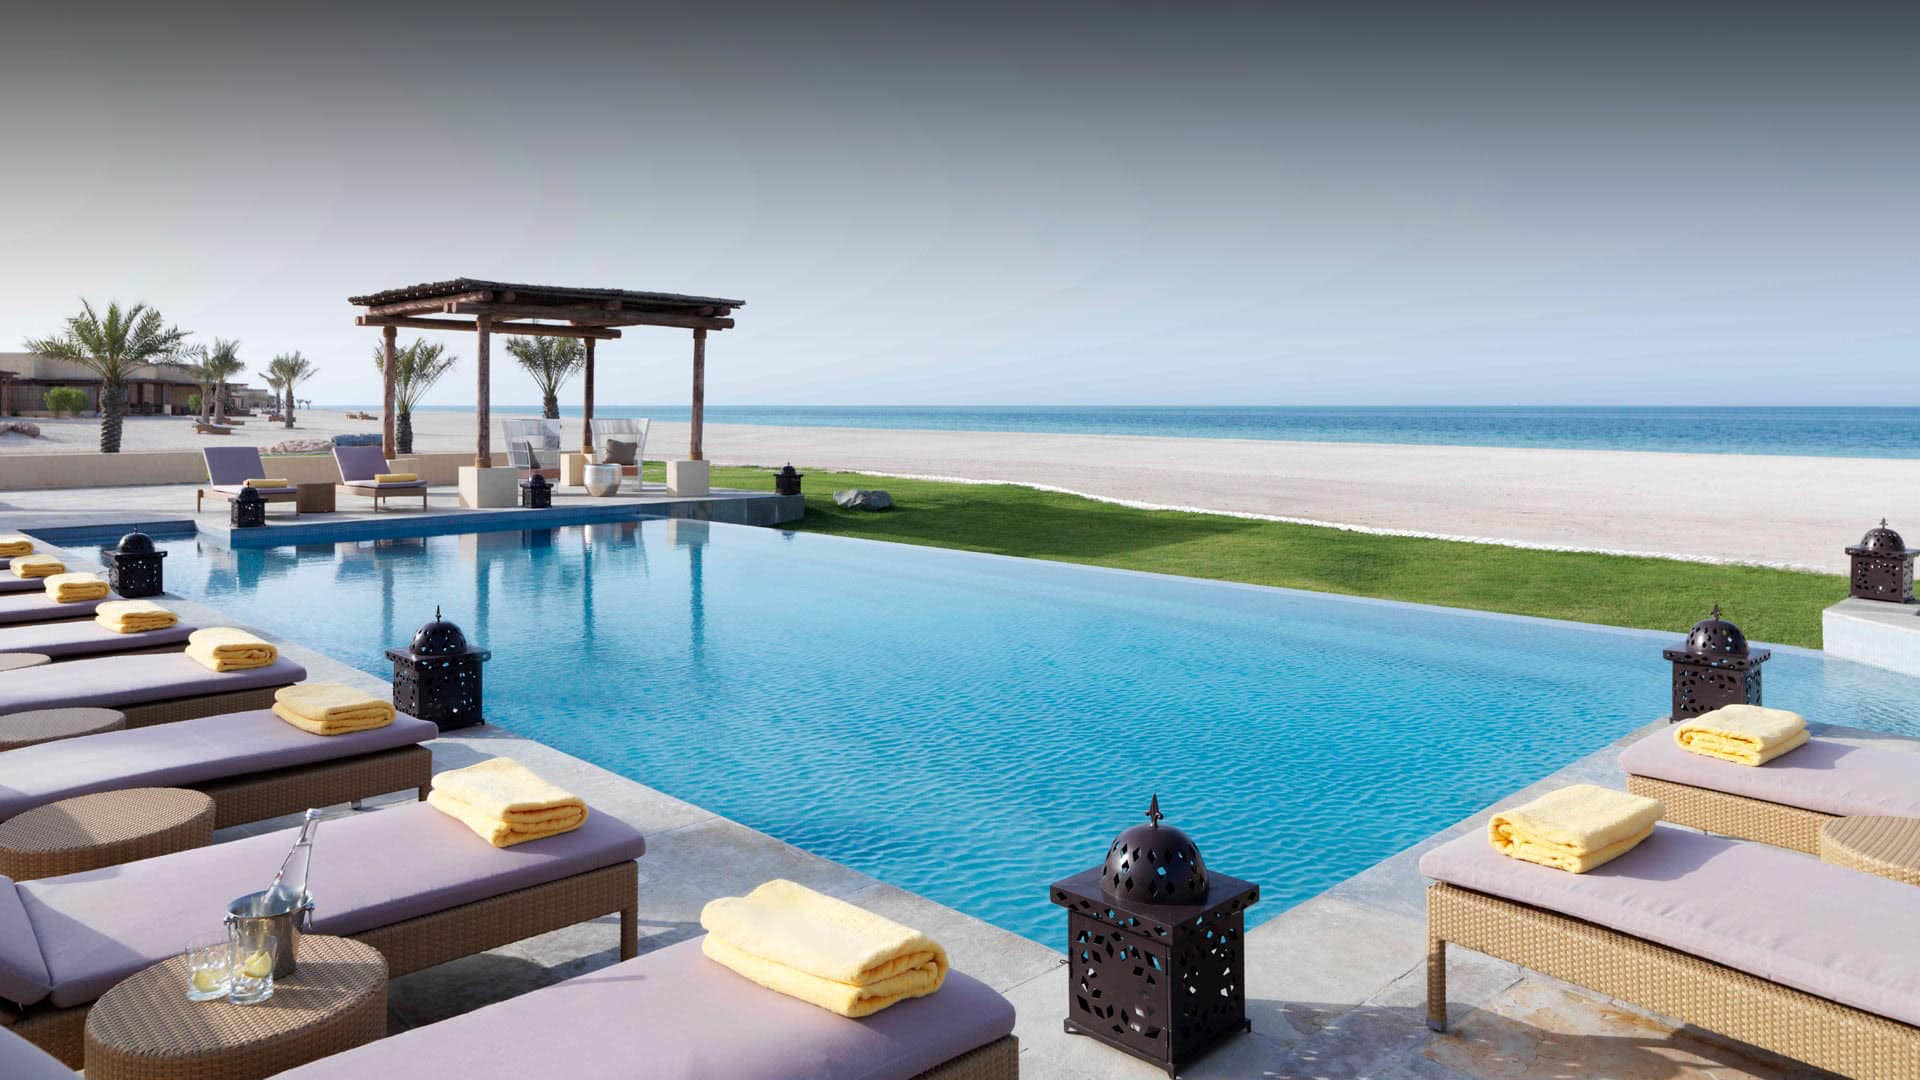 https://assets.anantara.com/image/upload/q_auto/media/minor/anantara/images/anantara-sir-bani-yas-island-al-yamm-villa-resort/the-resort/desktop-banner/anantara_al_yamm_header_1920x1080.jpg